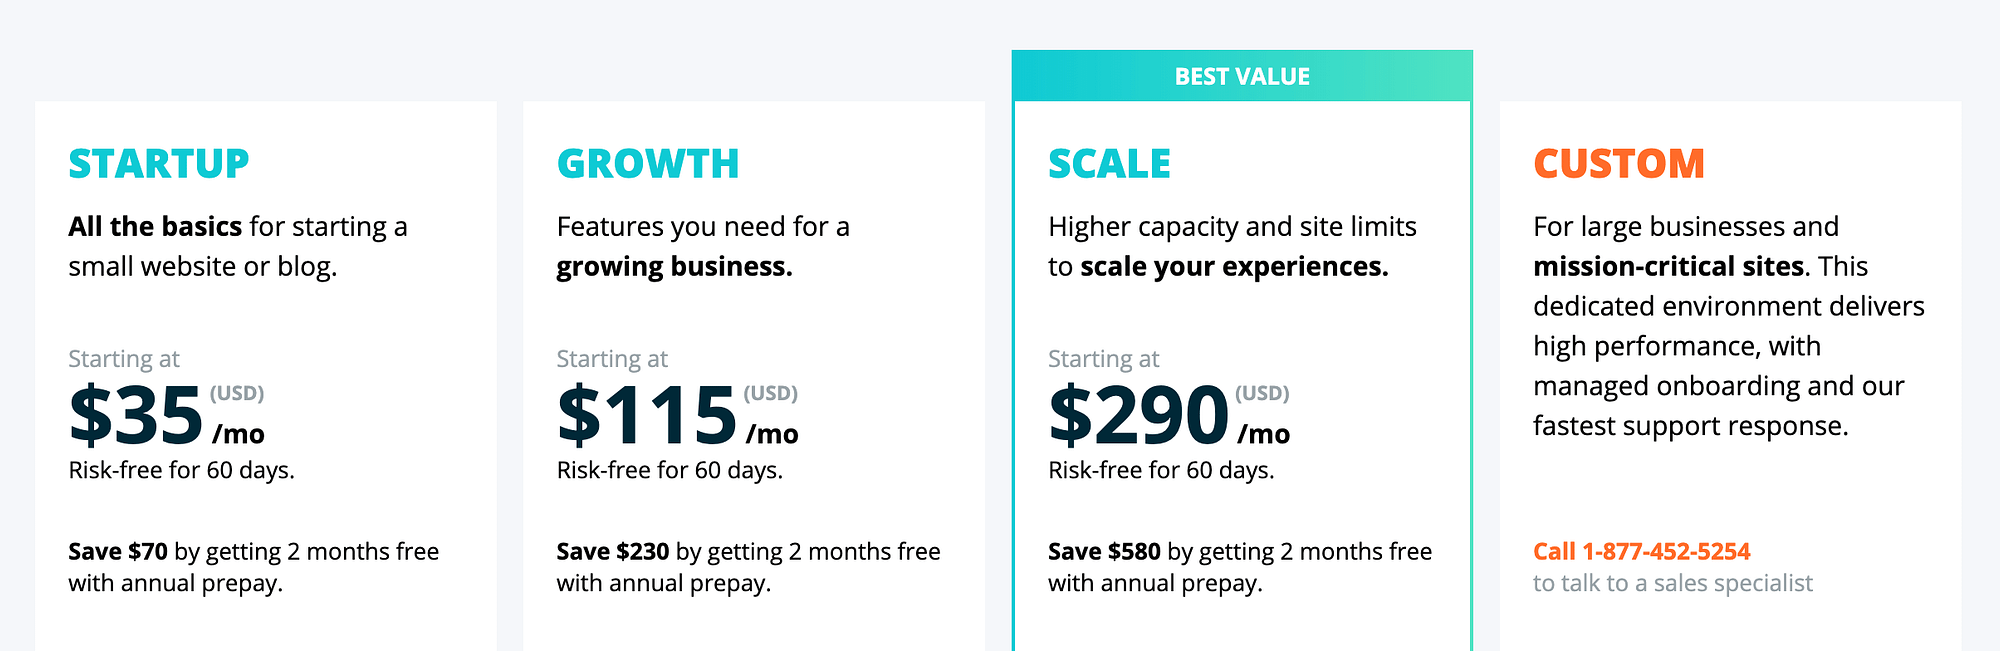 WP Engine pricing vs SiteGround